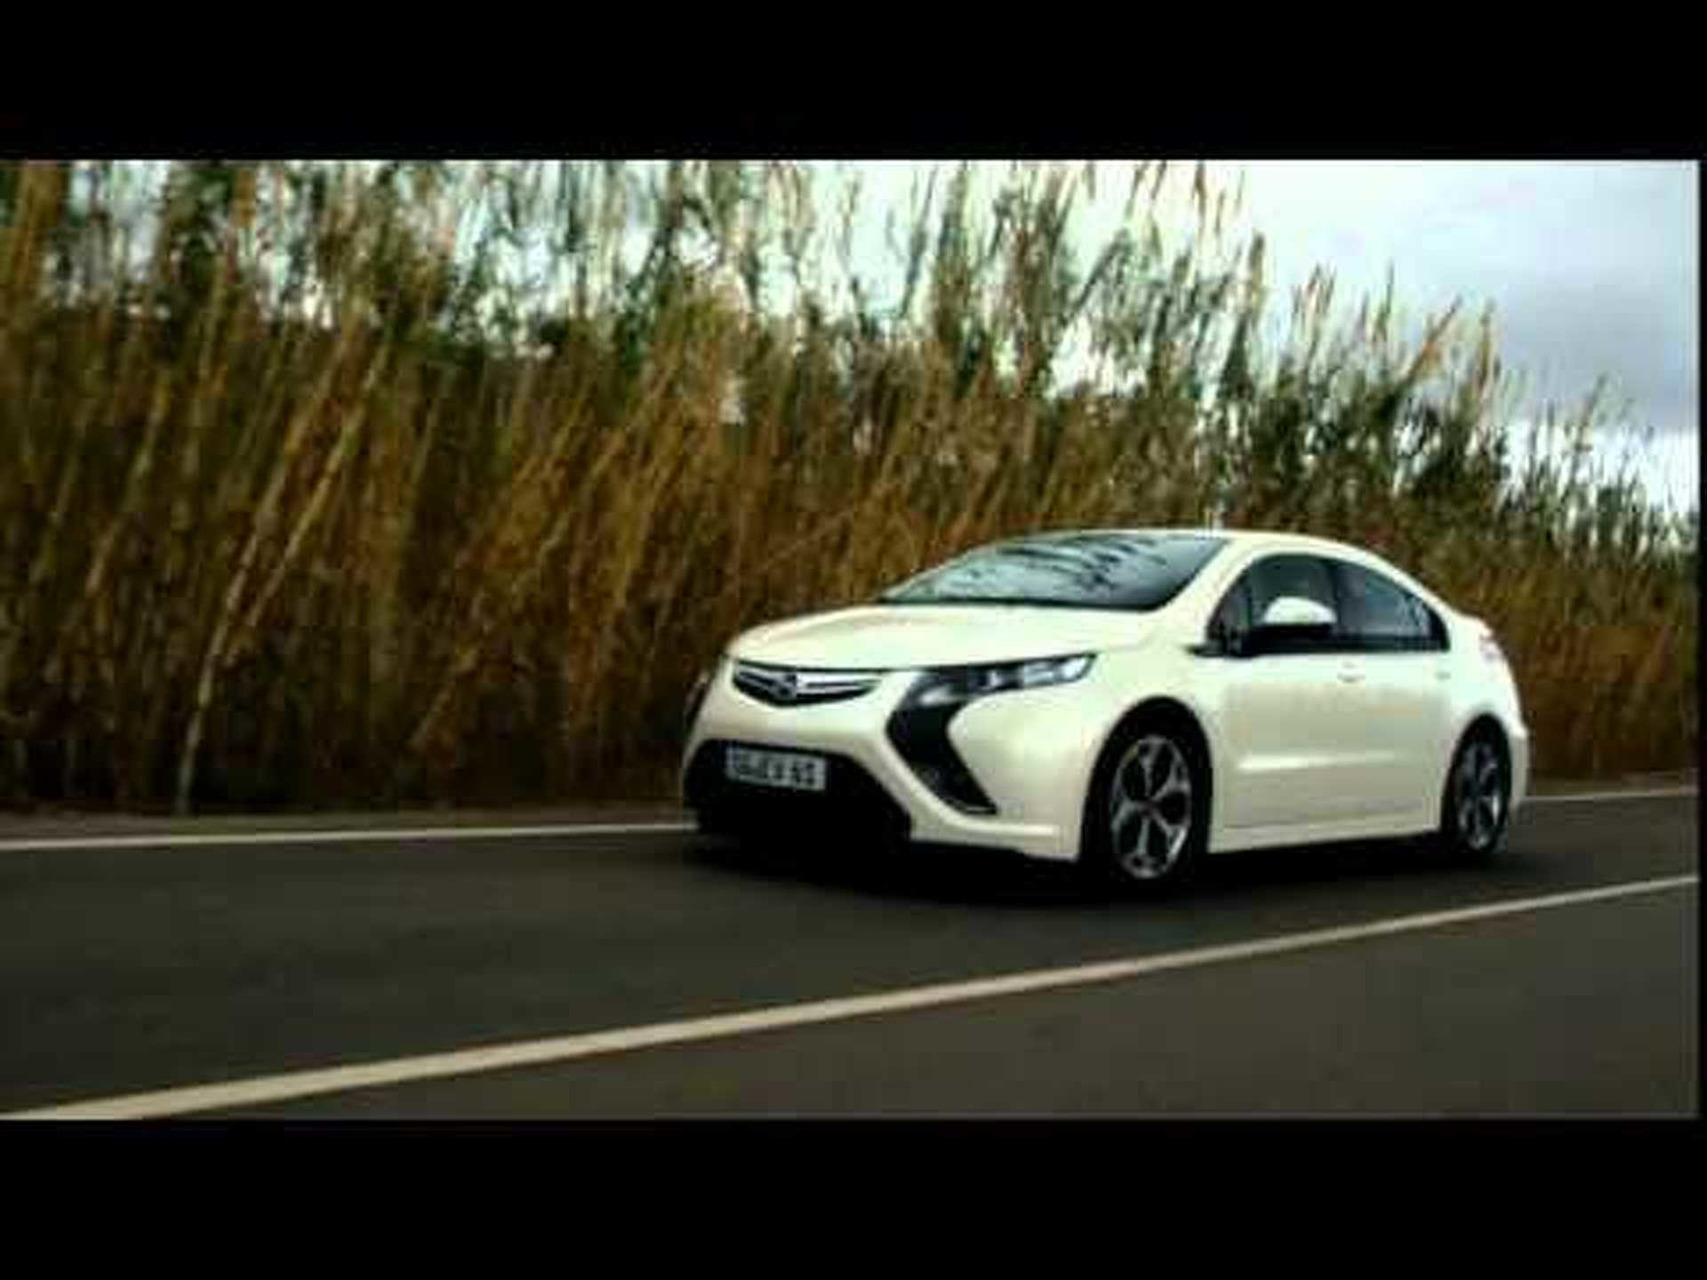 Opel Ampera Footage Part 2 of 2